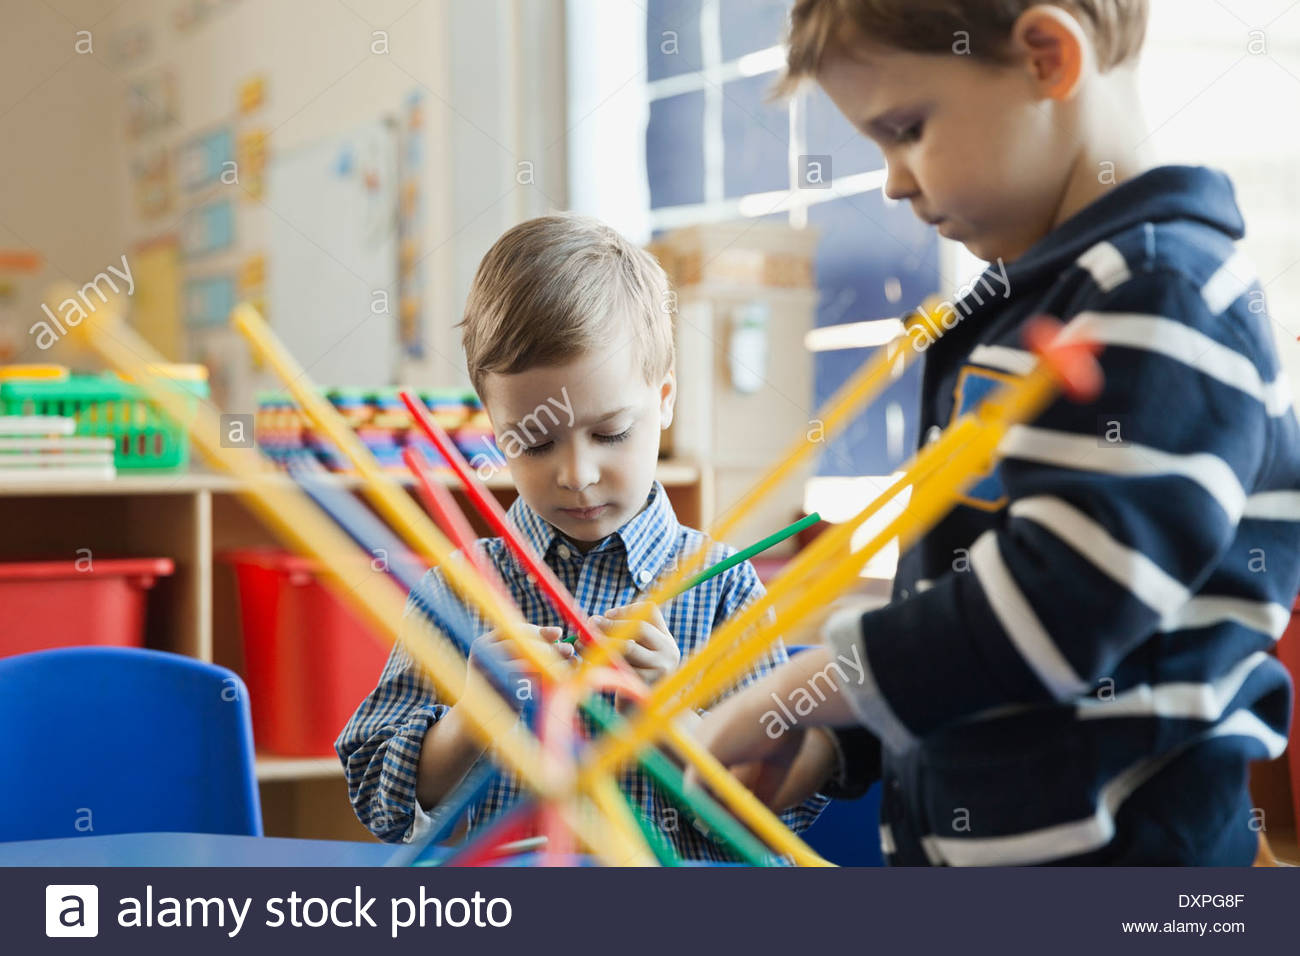 Boys playing in elementary school - Stock Image